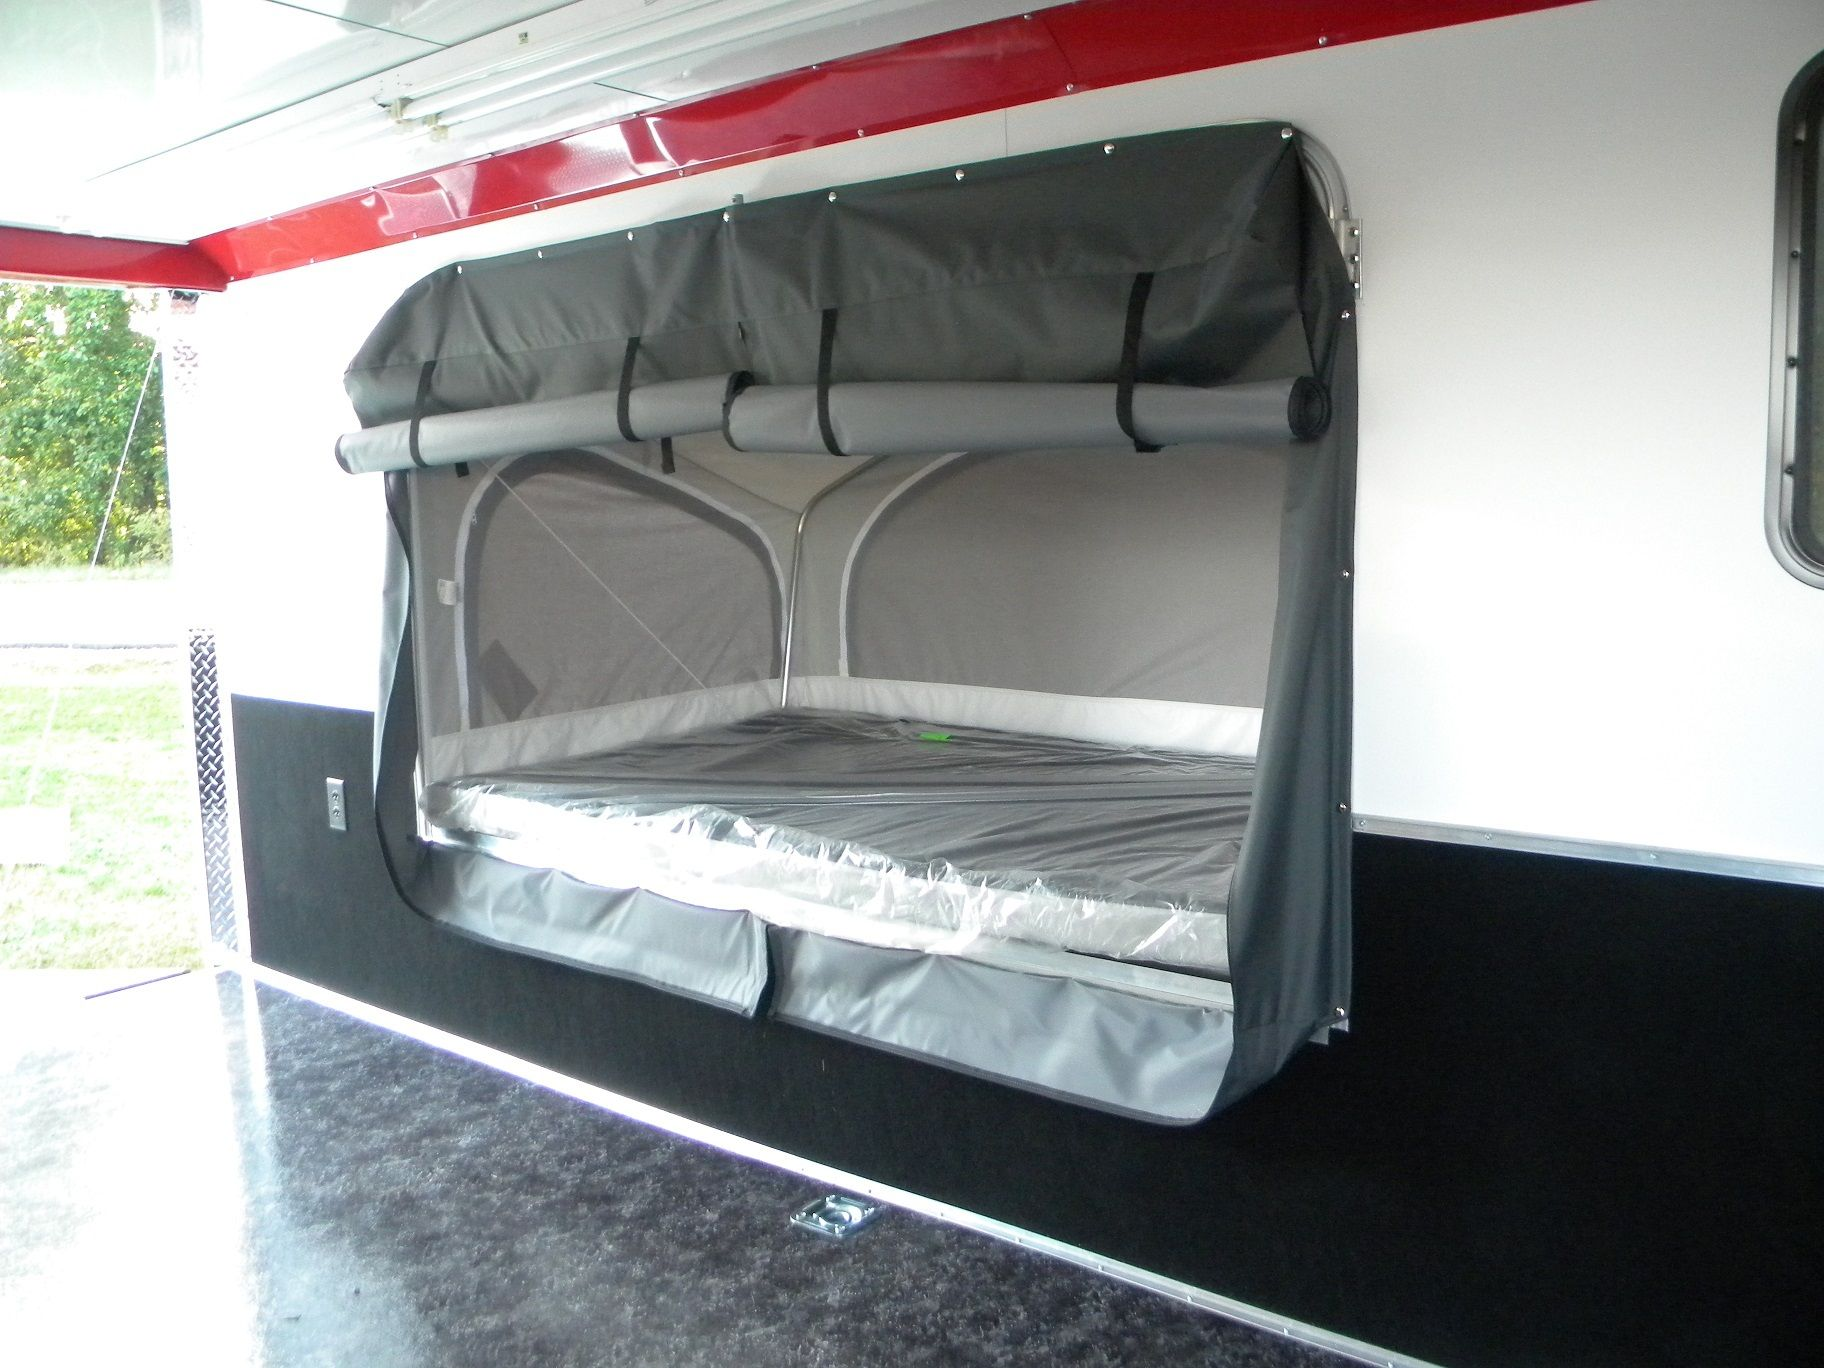 gallery image camper trailer ideas pinterest tents suv camping and cargo trailers. Black Bedroom Furniture Sets. Home Design Ideas